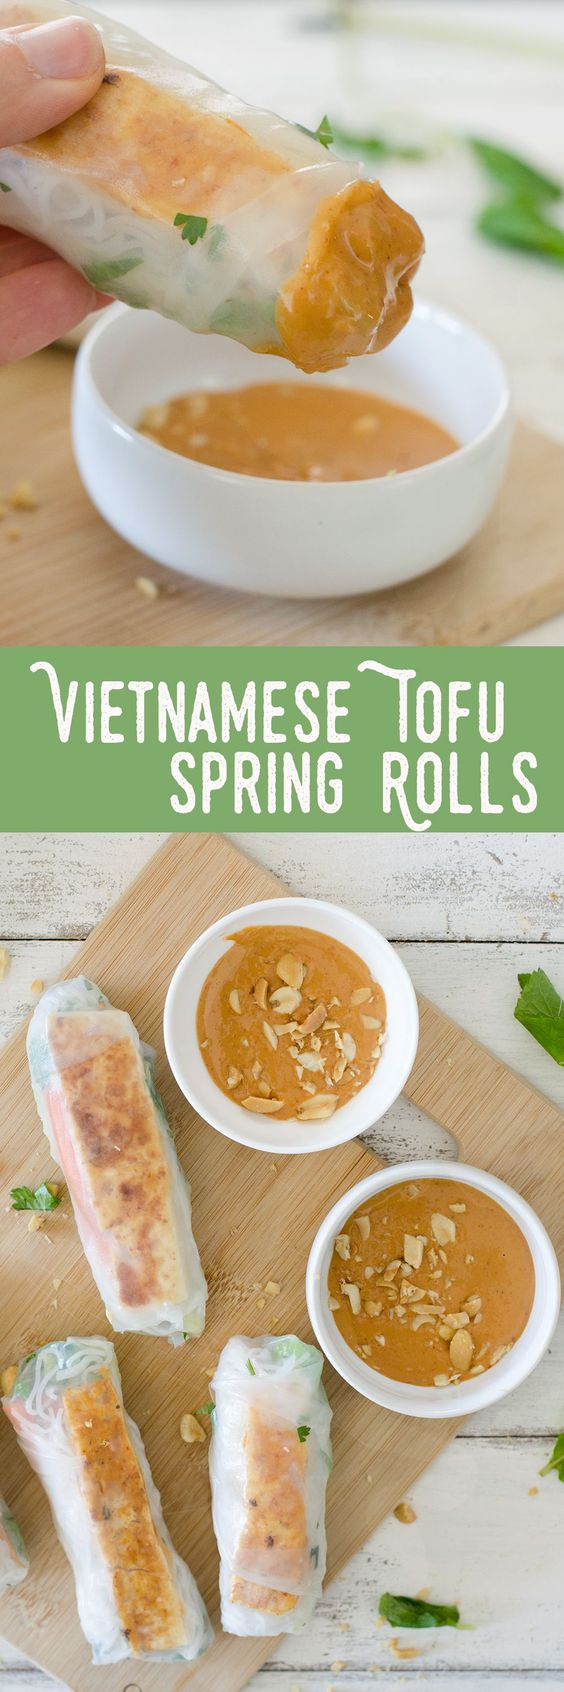 Spring Rolls With Shredded Cabbage, Mushrooms, And Tofu Recipe ...